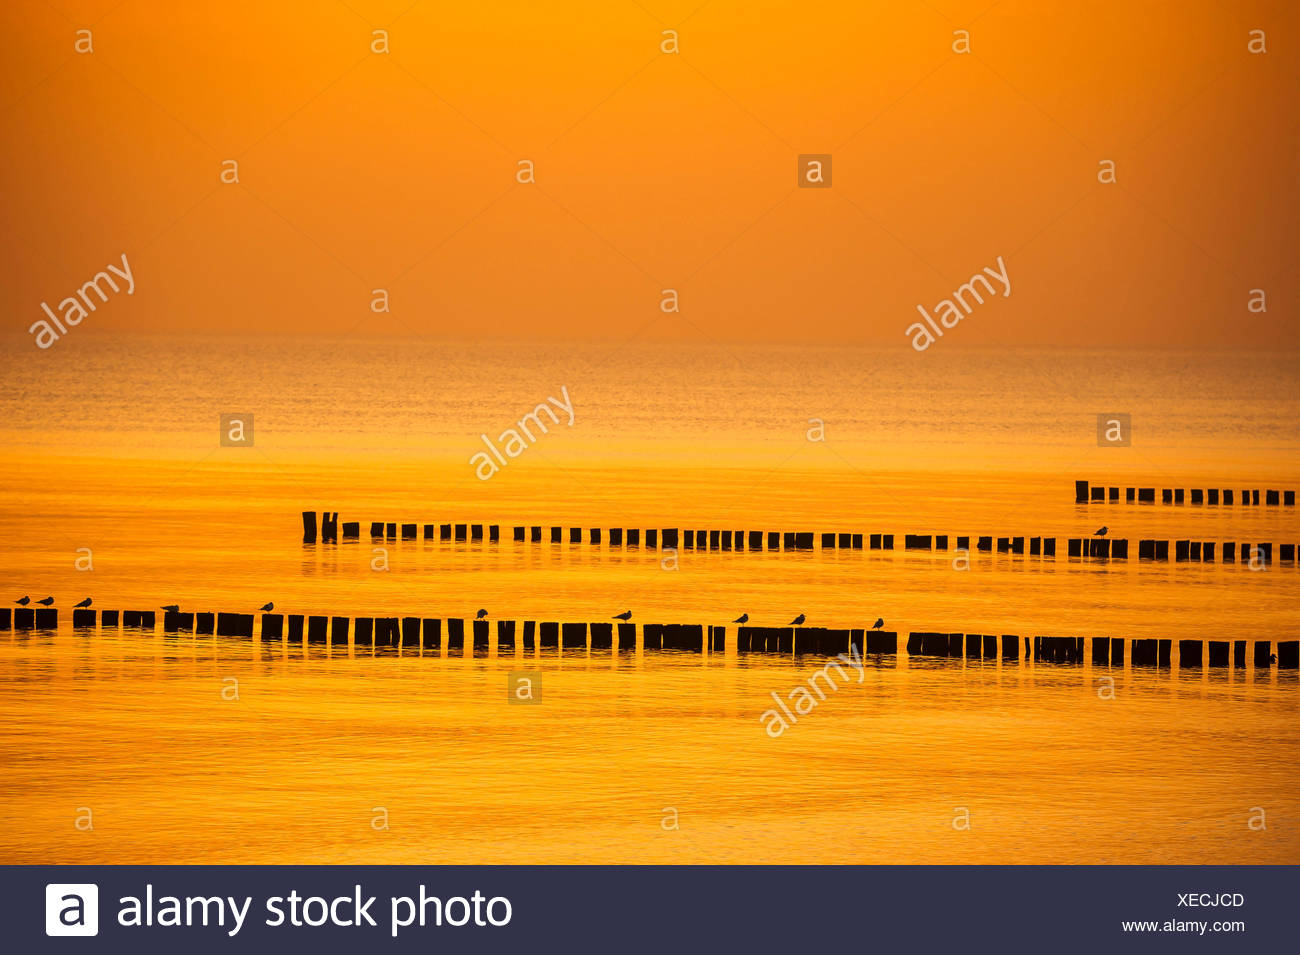 Breakwaters with gulls in the orange light of the setting sun. - Stock Image